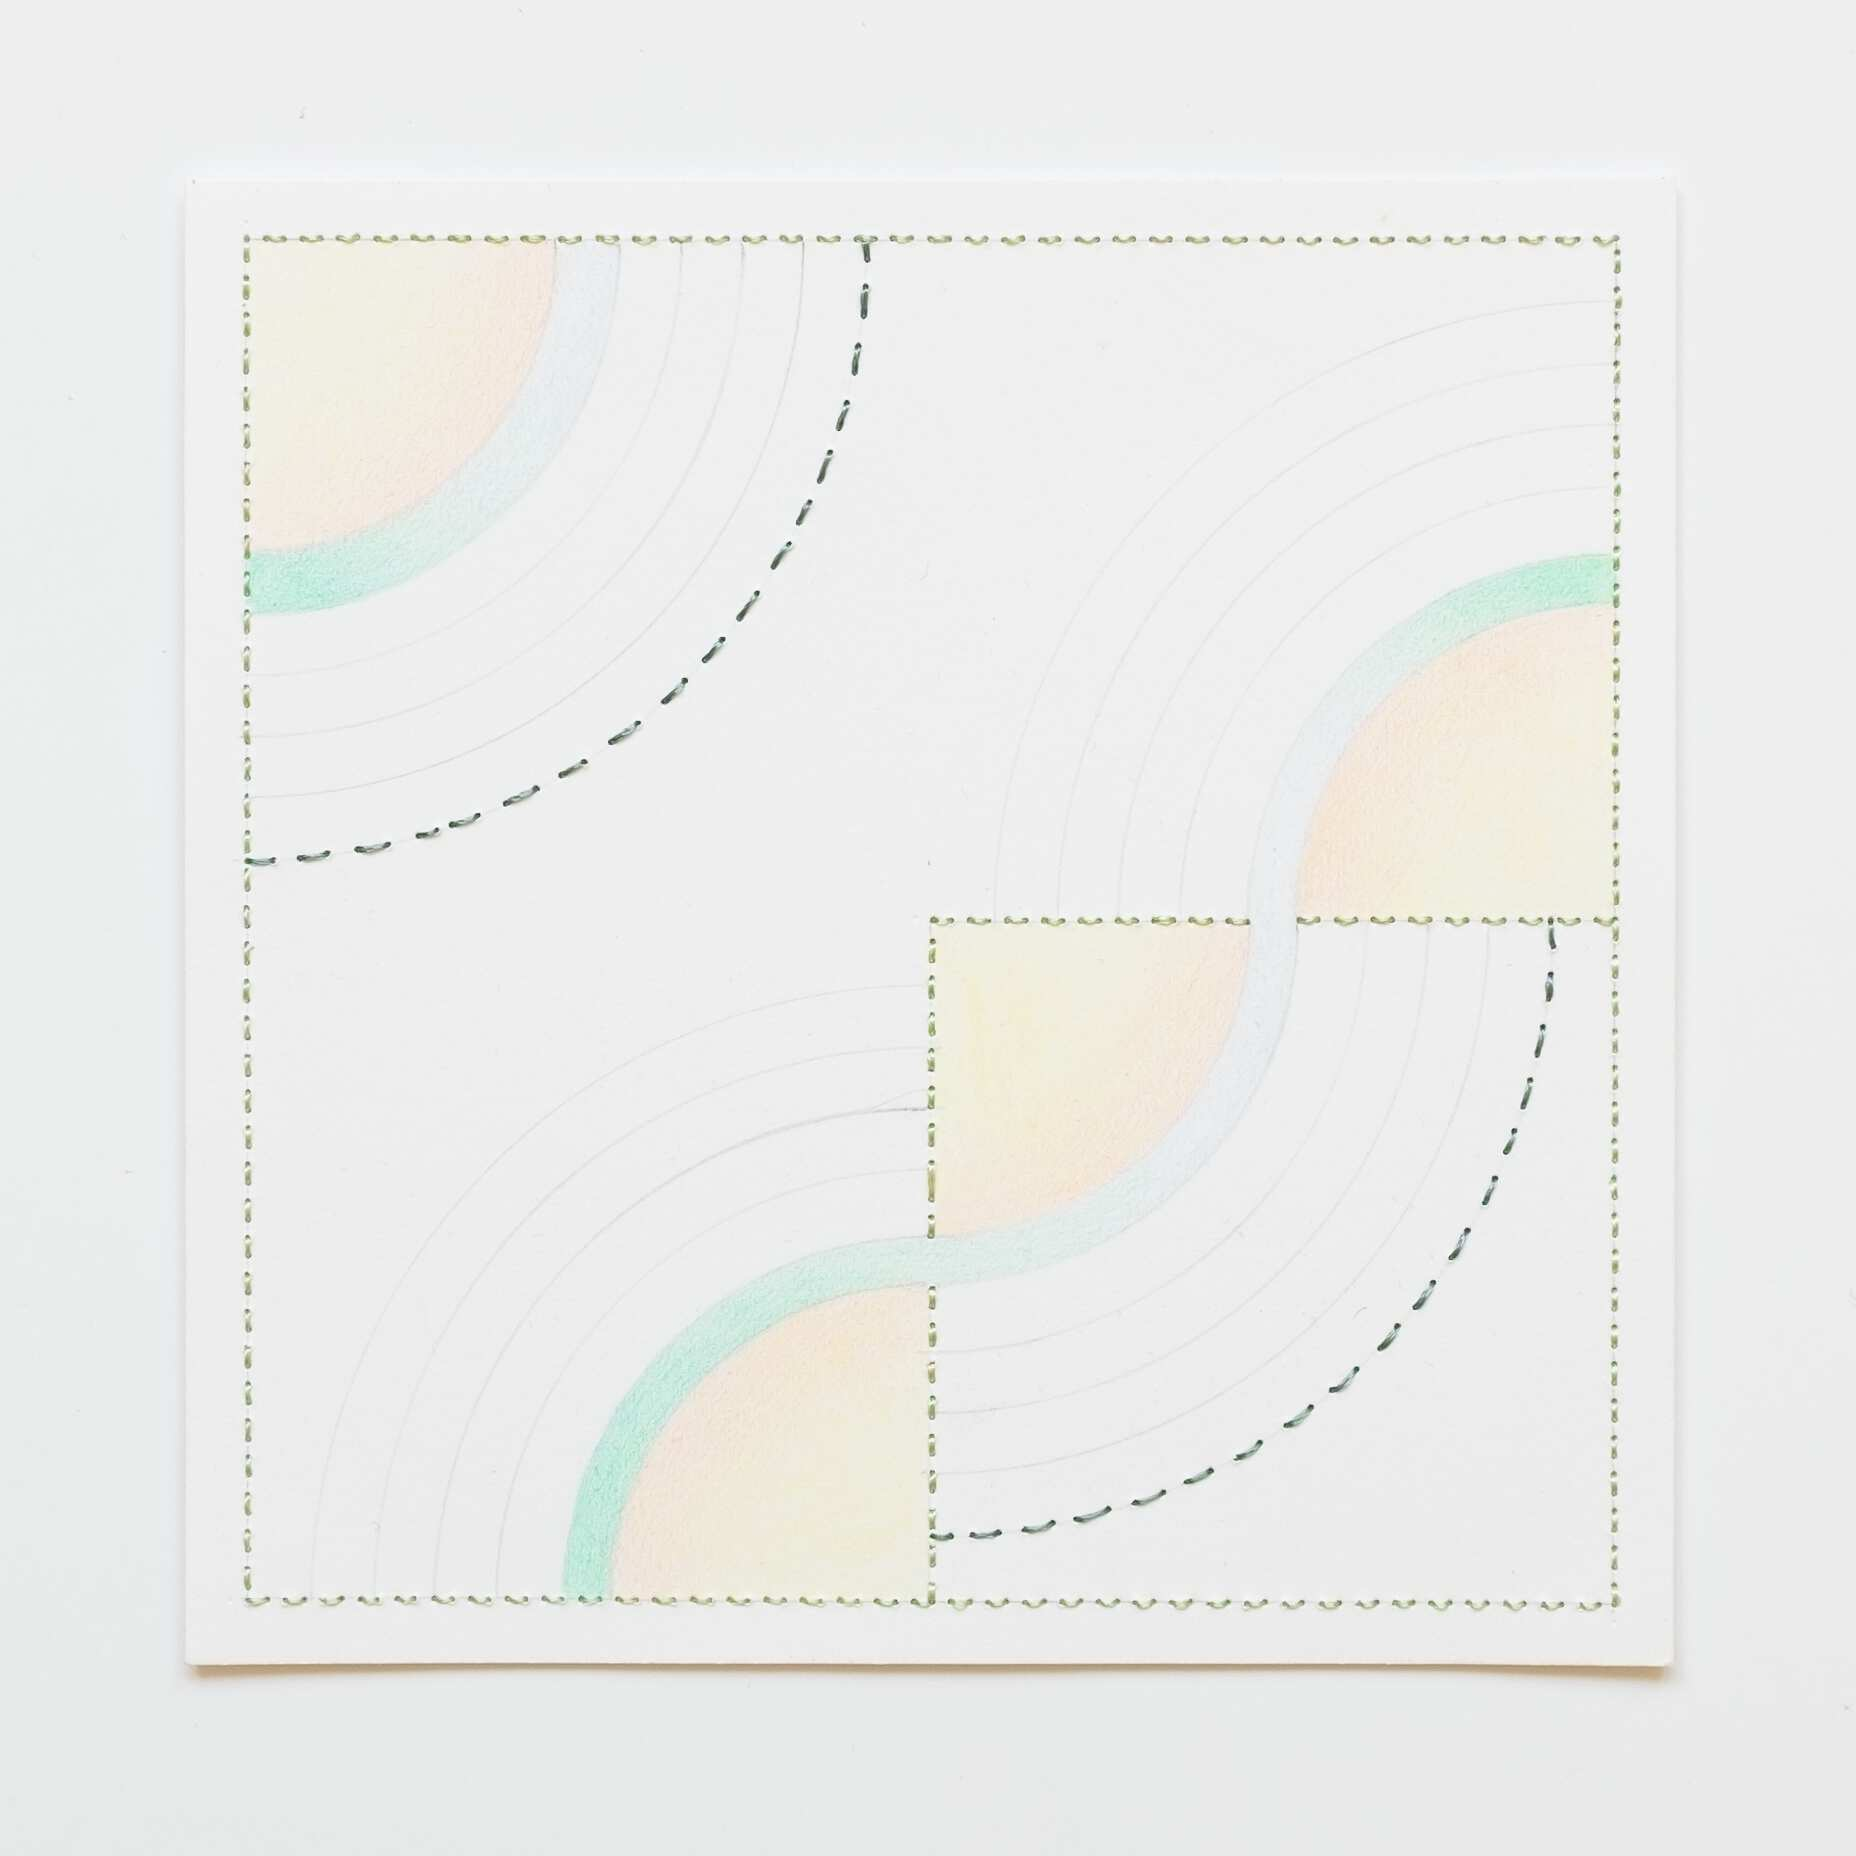 Quilted Composition [white // rainbows YGOB], Hand-embroidered silk on paper, pencil, coloured pencil, 2019